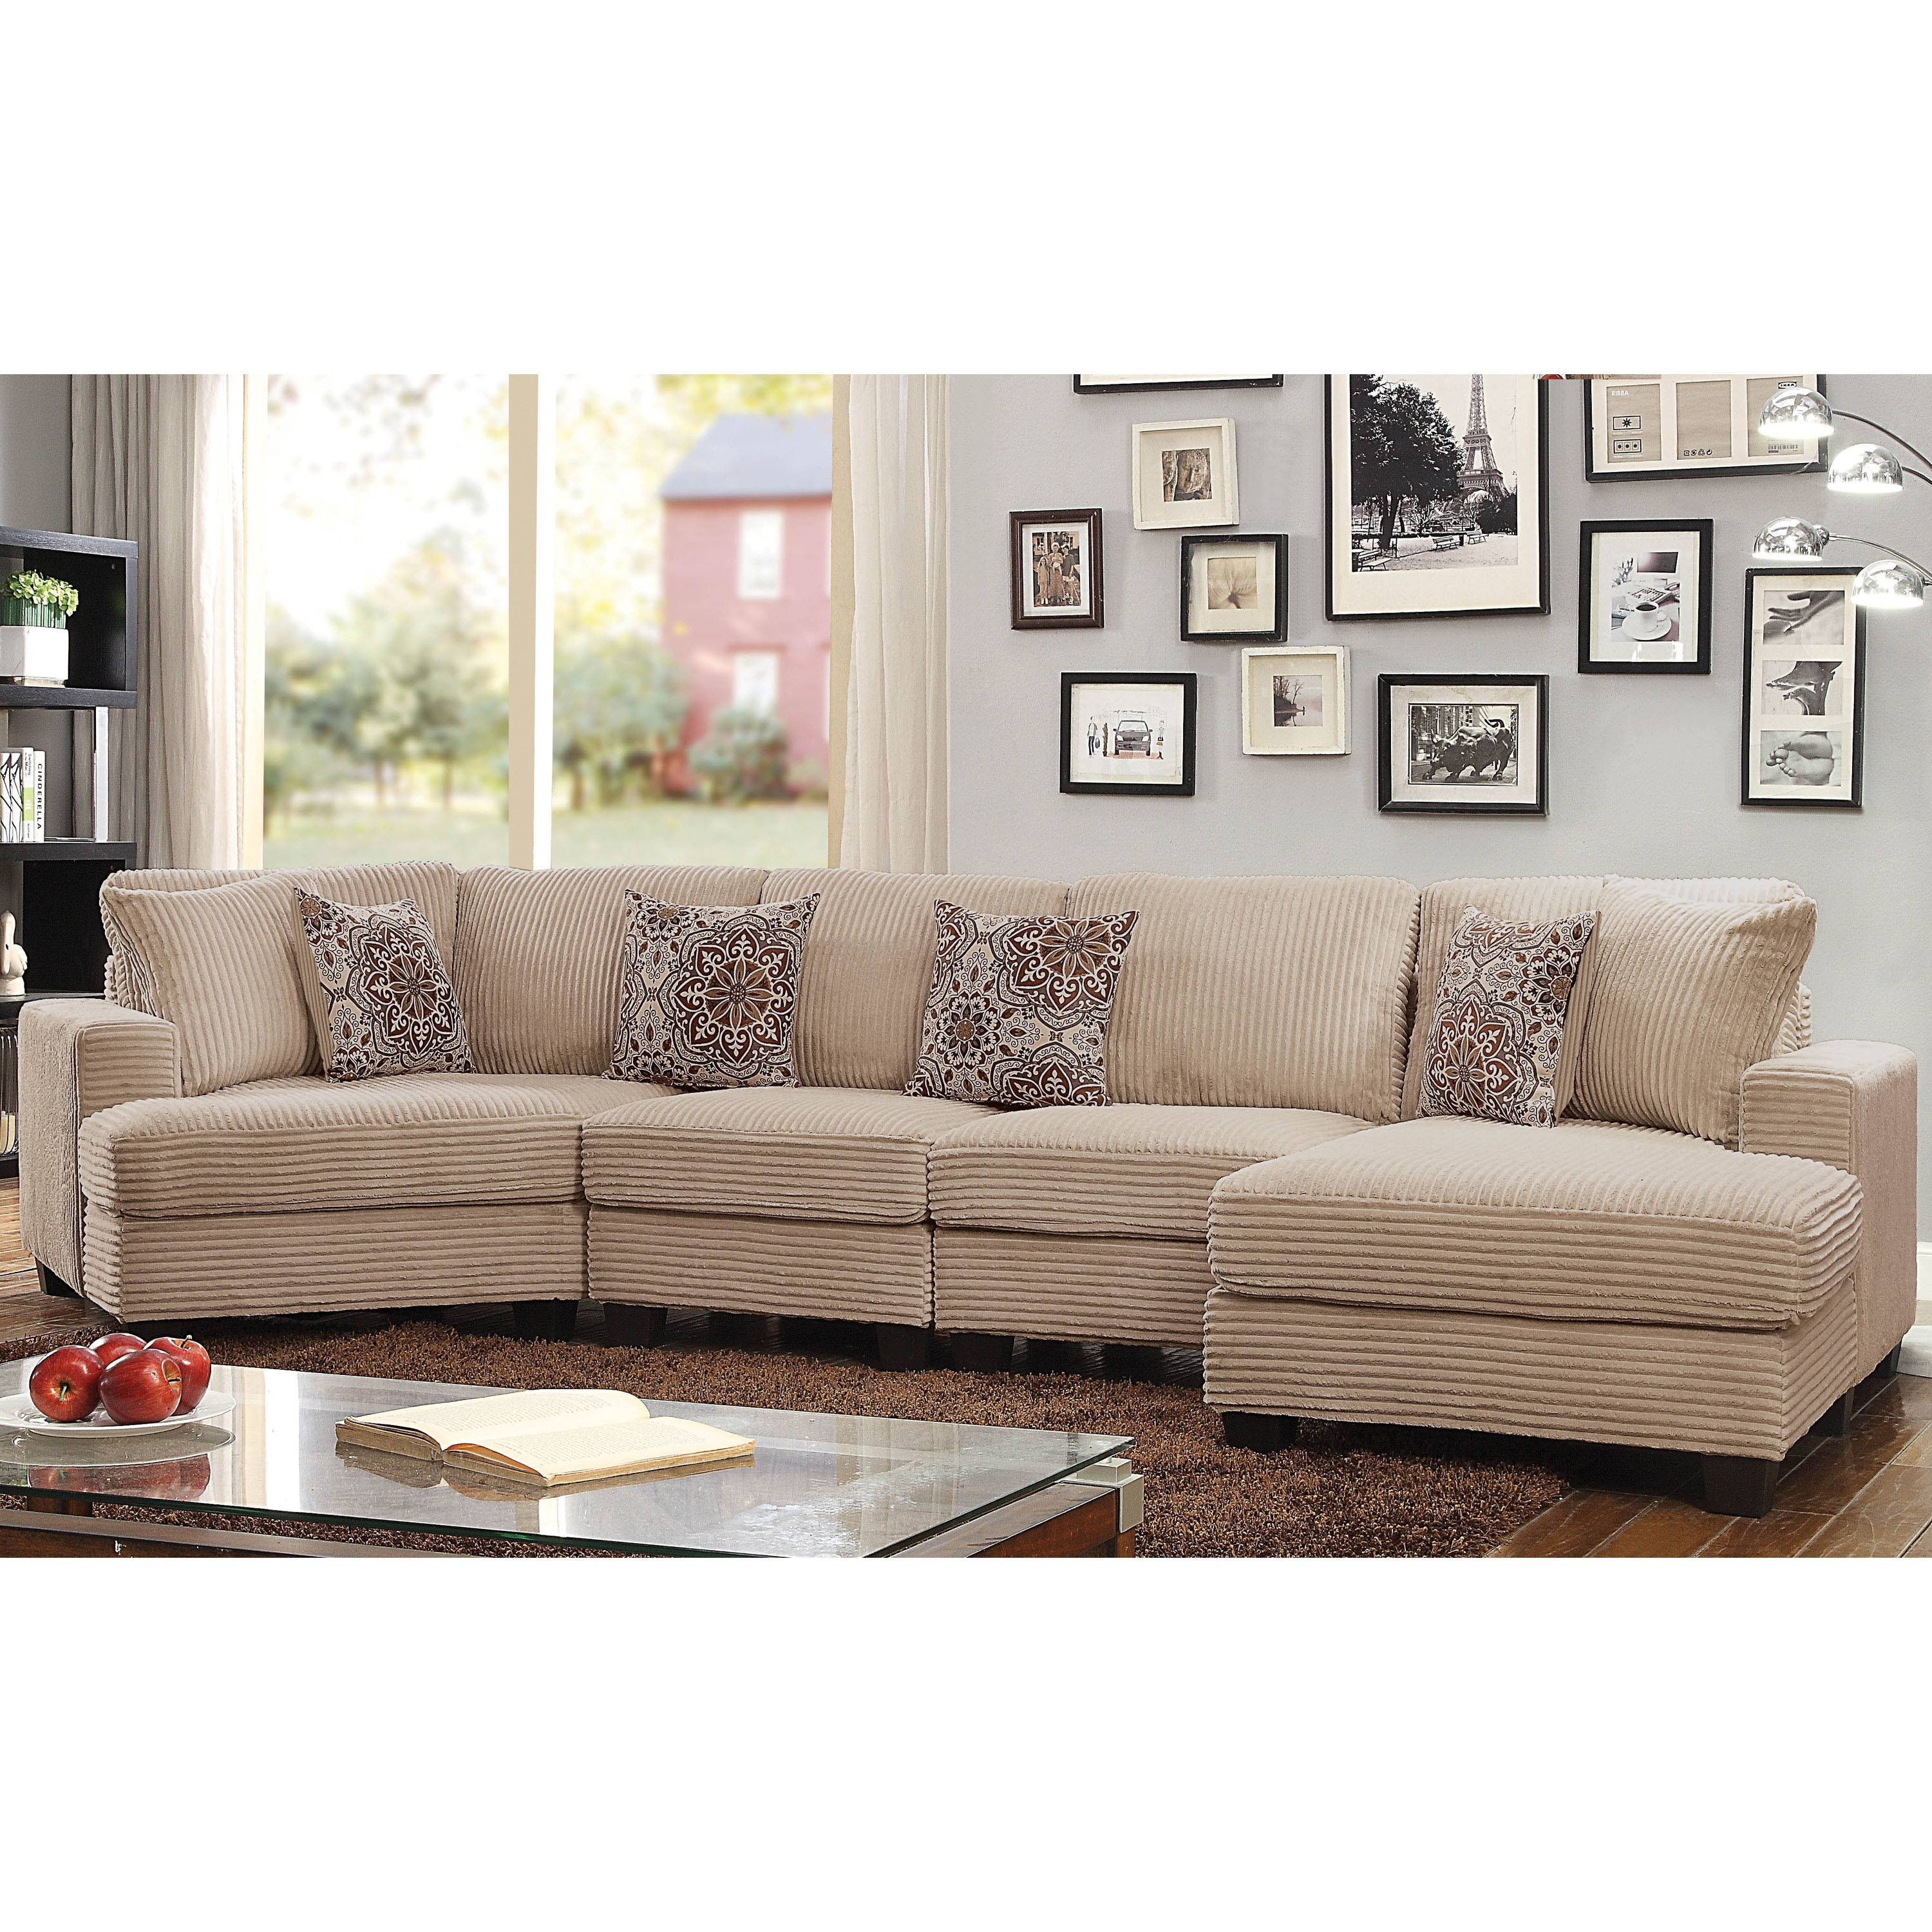 Furniture Of America Barrington Contemporary Beige Corduroy Sectional Sofa On Free Shipping Today 20614284